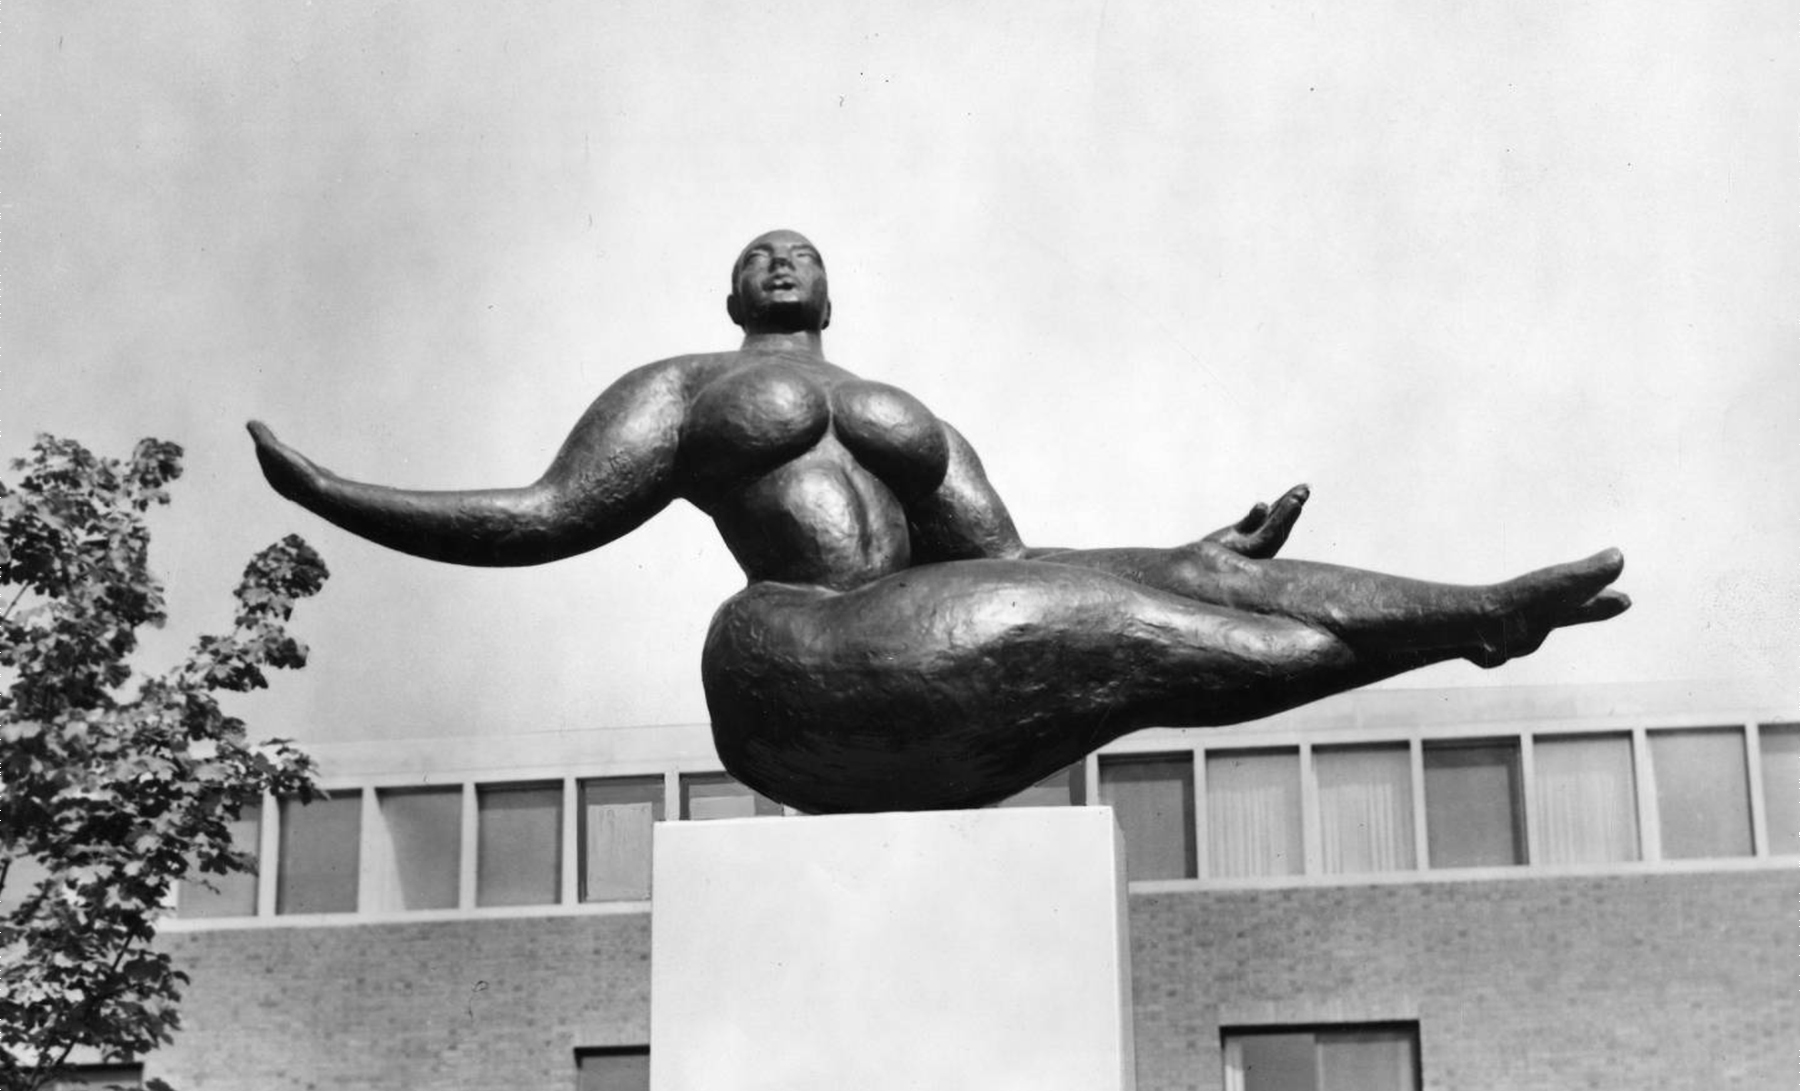 Floating Figure bronze sculpture of a woman with arms outstretched